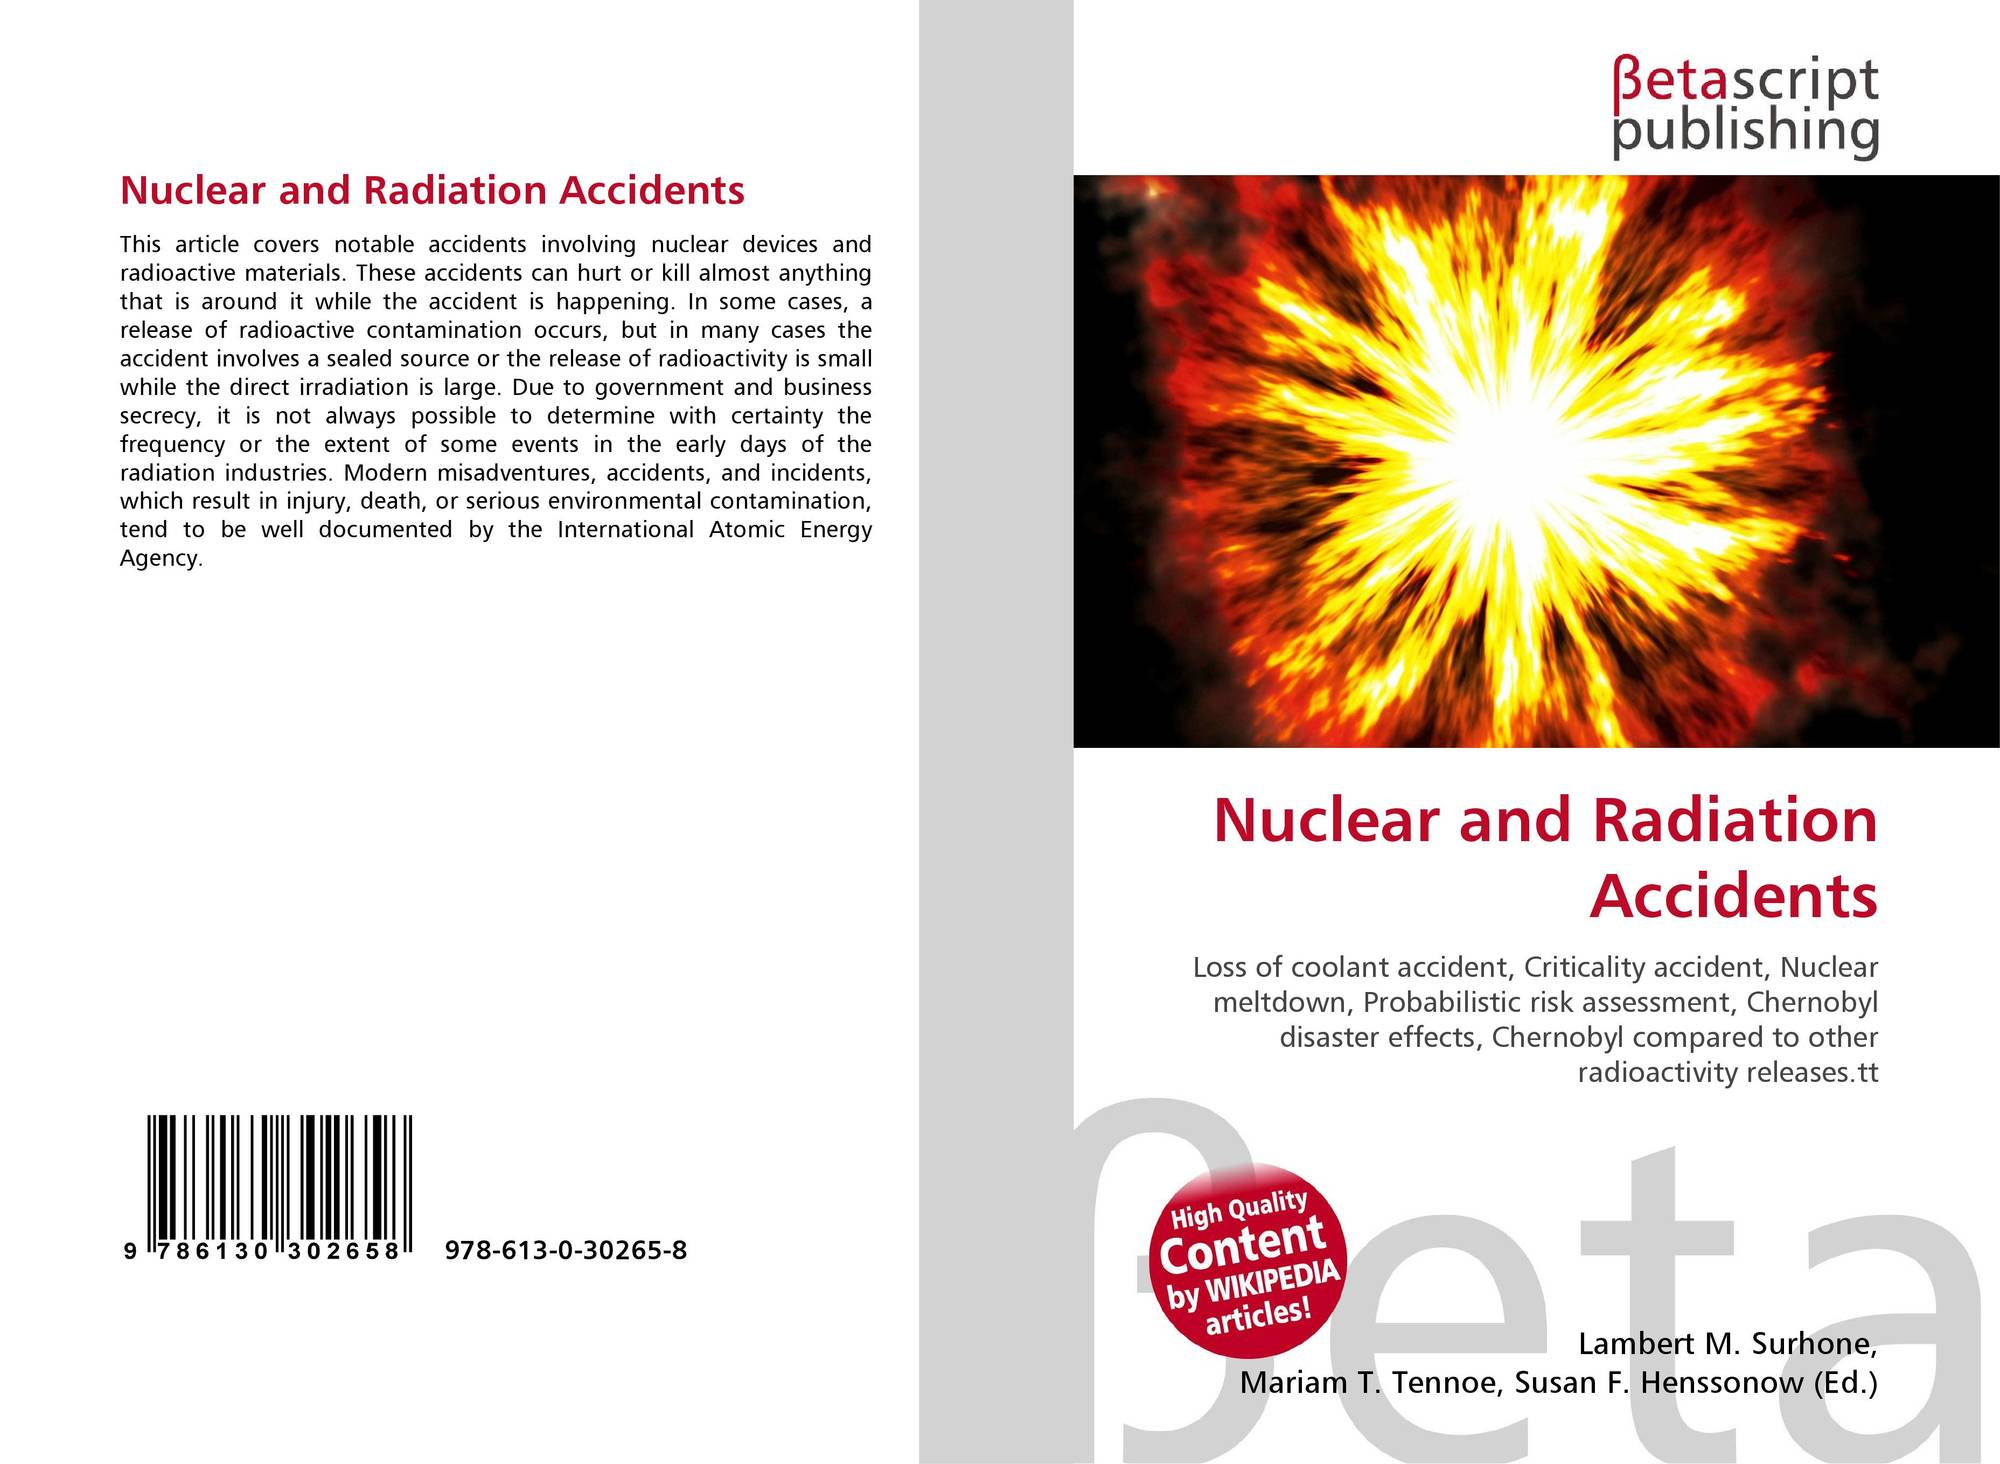 nuclear radiation accidents essay Fukushima daiichi fukushima, japan, march 2011 the earthquake and tsunami that struck eastern japan on march 11, 2011, caused a serious accident at the fukushima dai-ichi nuclear power plant on the northeastern coast of japan.